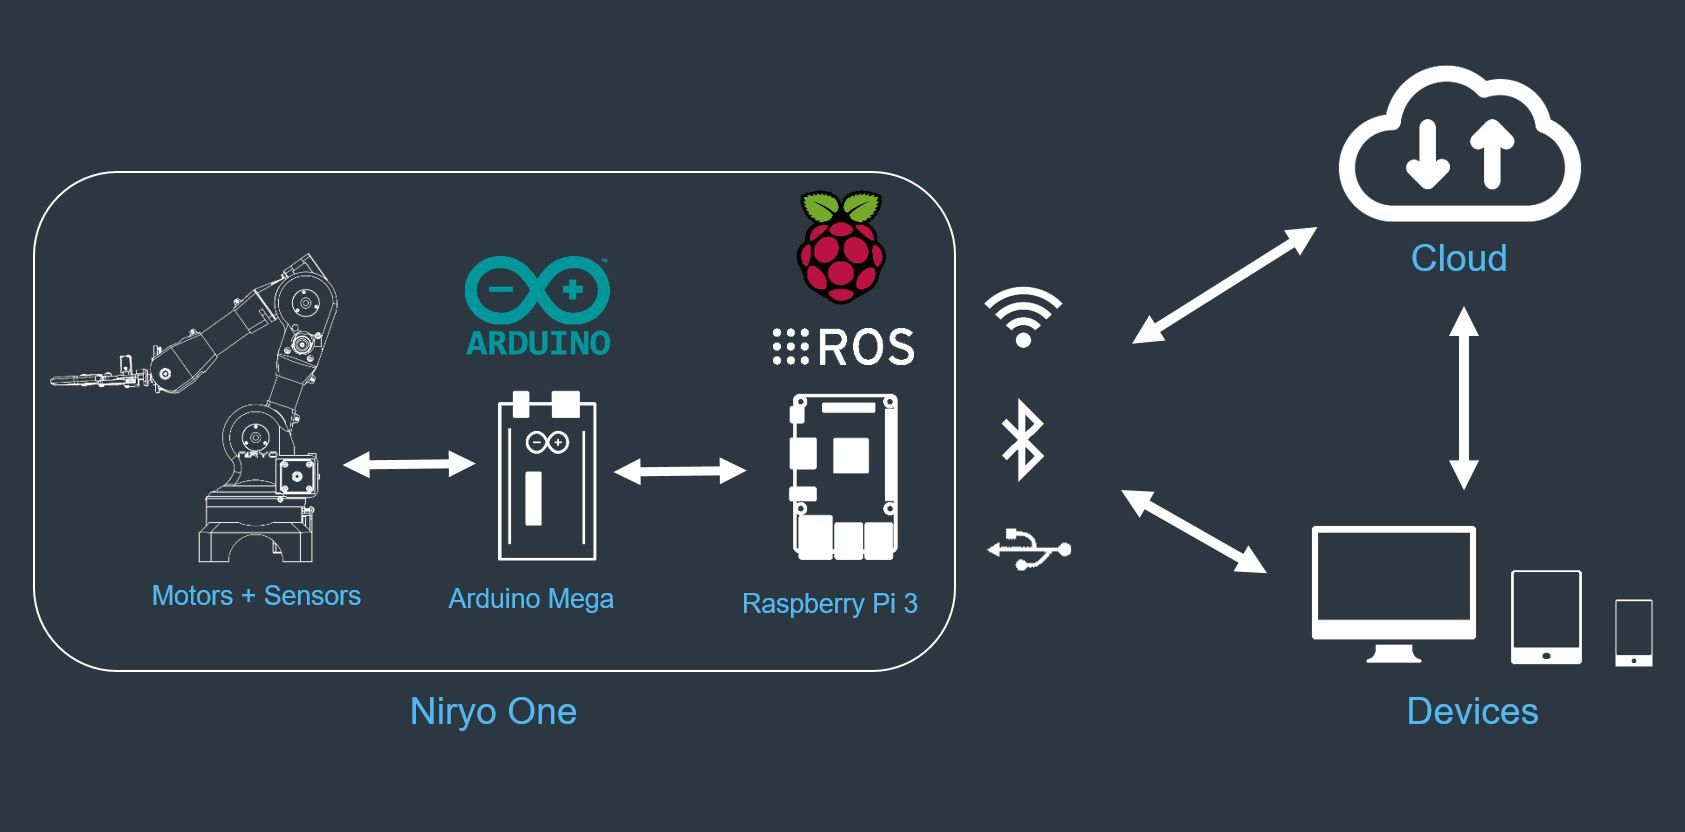 robot as a service - iot - connected objects